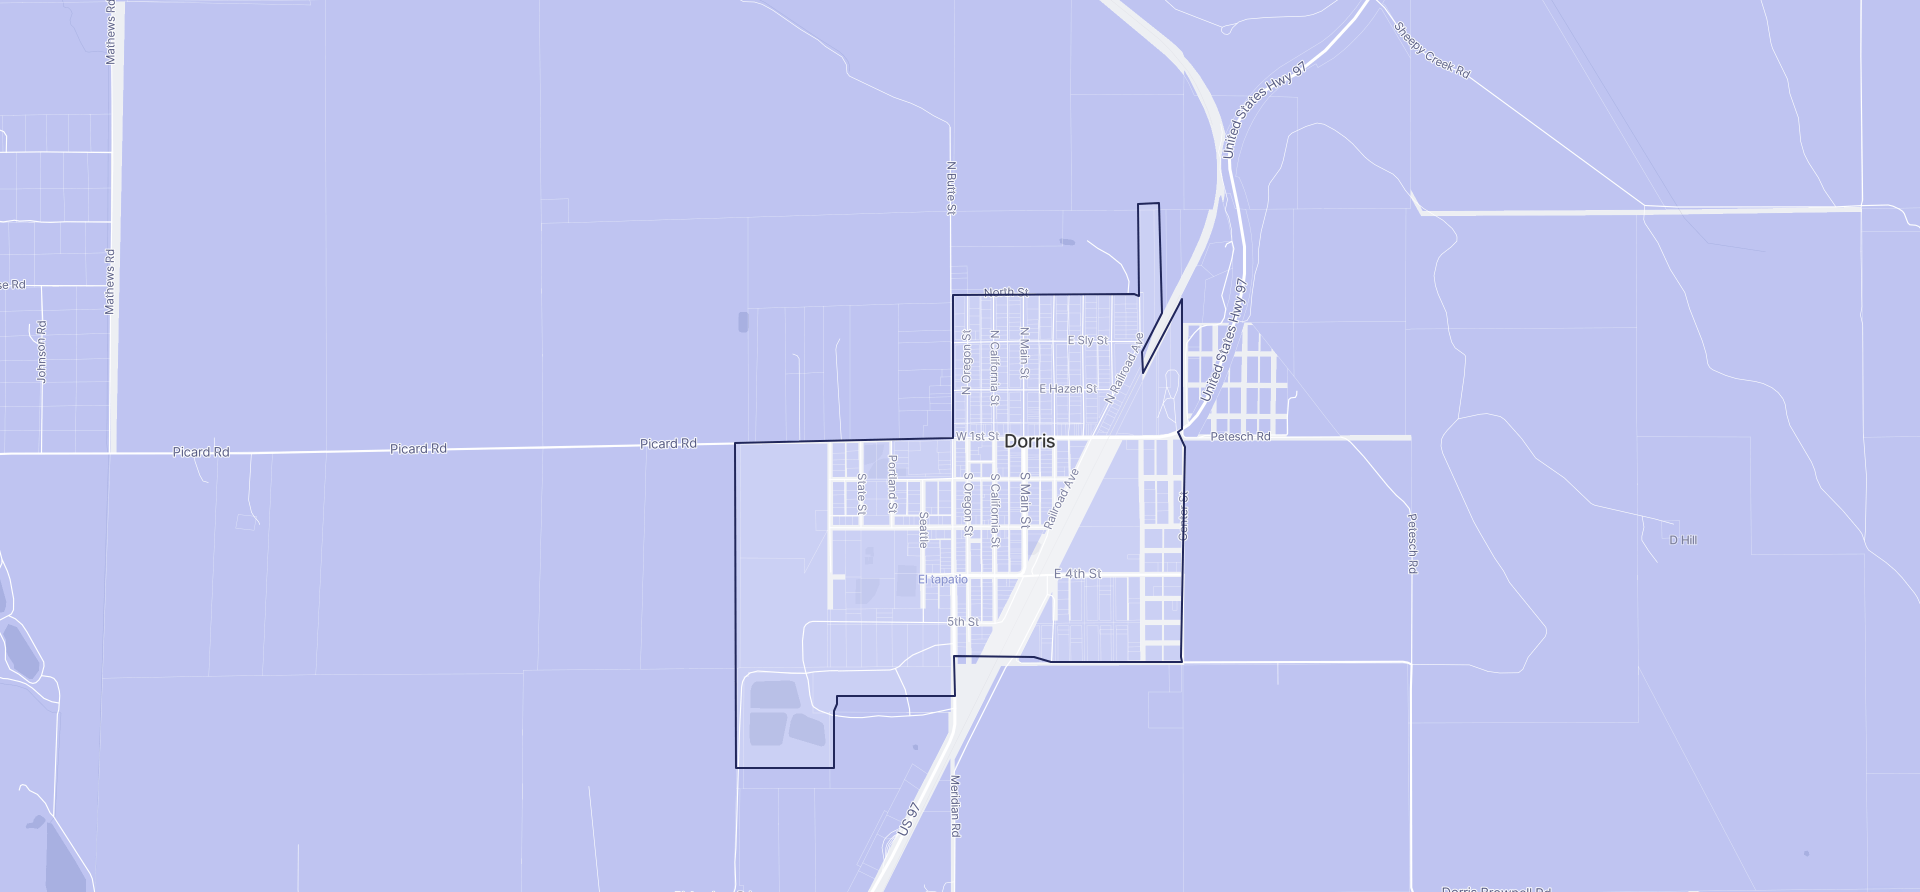 Image of Dorris boundaries on a map.